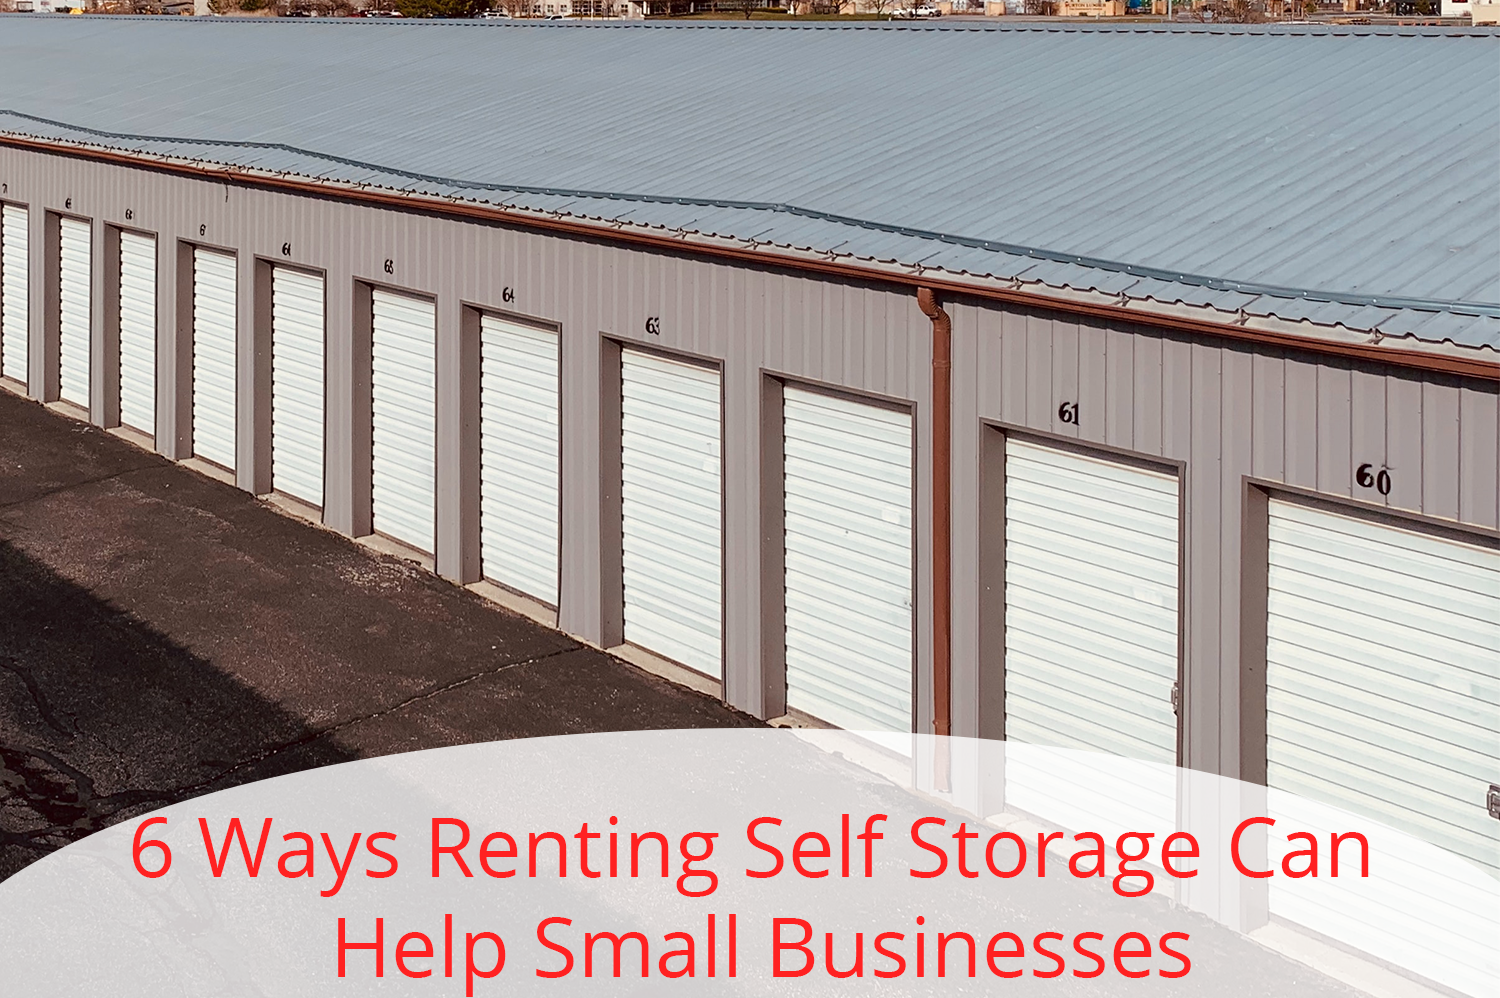 Self-storage units that can help small businesses.